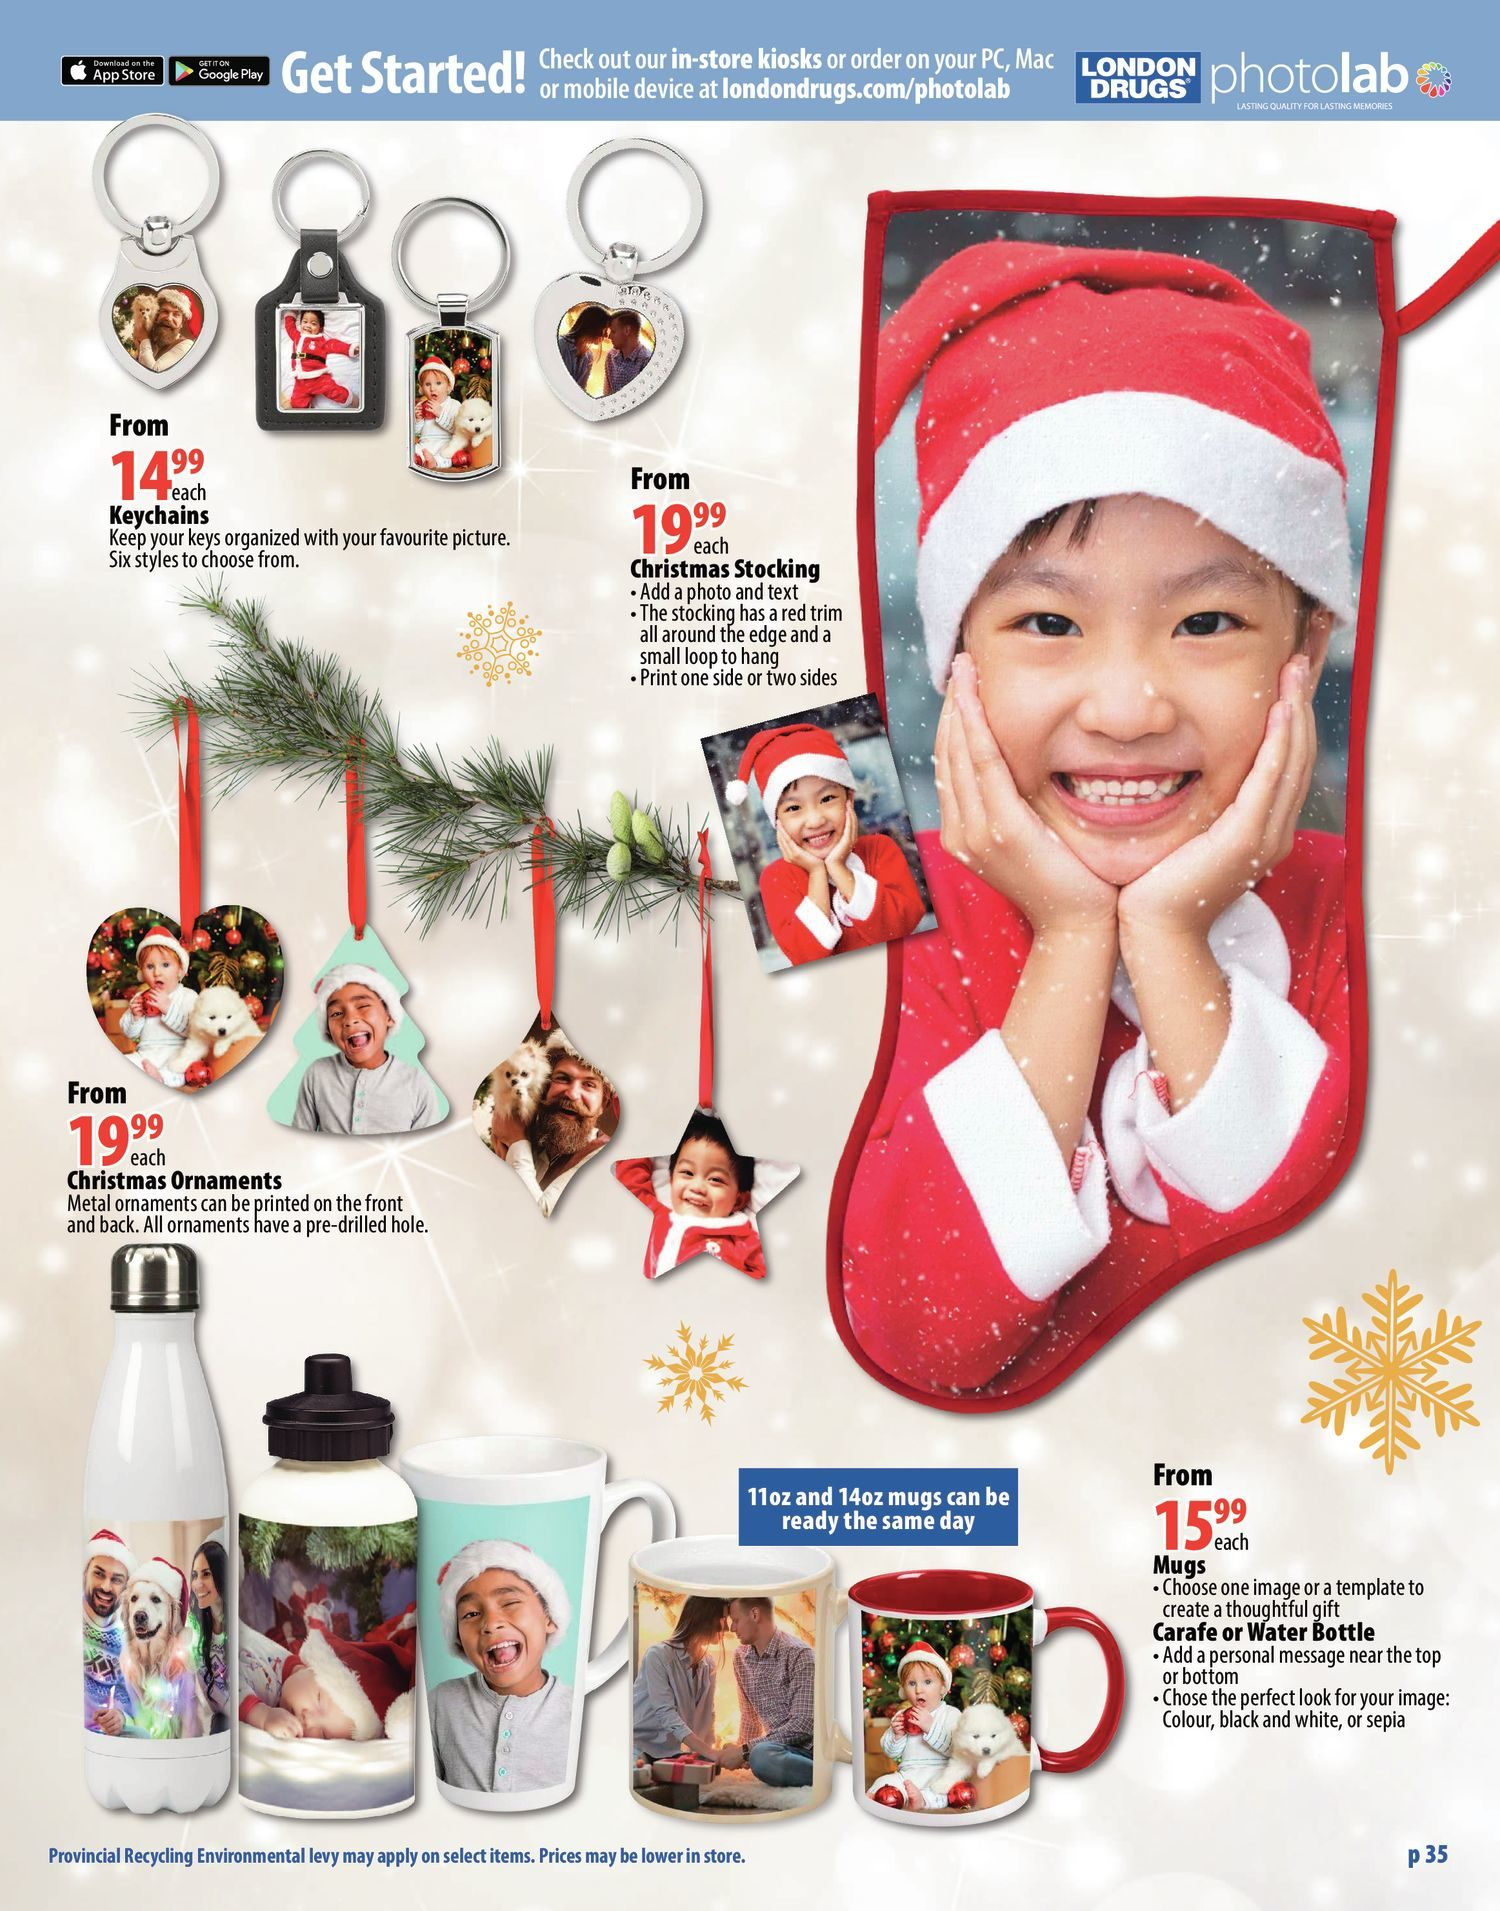 London Drugs Weekly Flyer All Your Christmas Gifts Nov 16 24 Redflagdeals Com